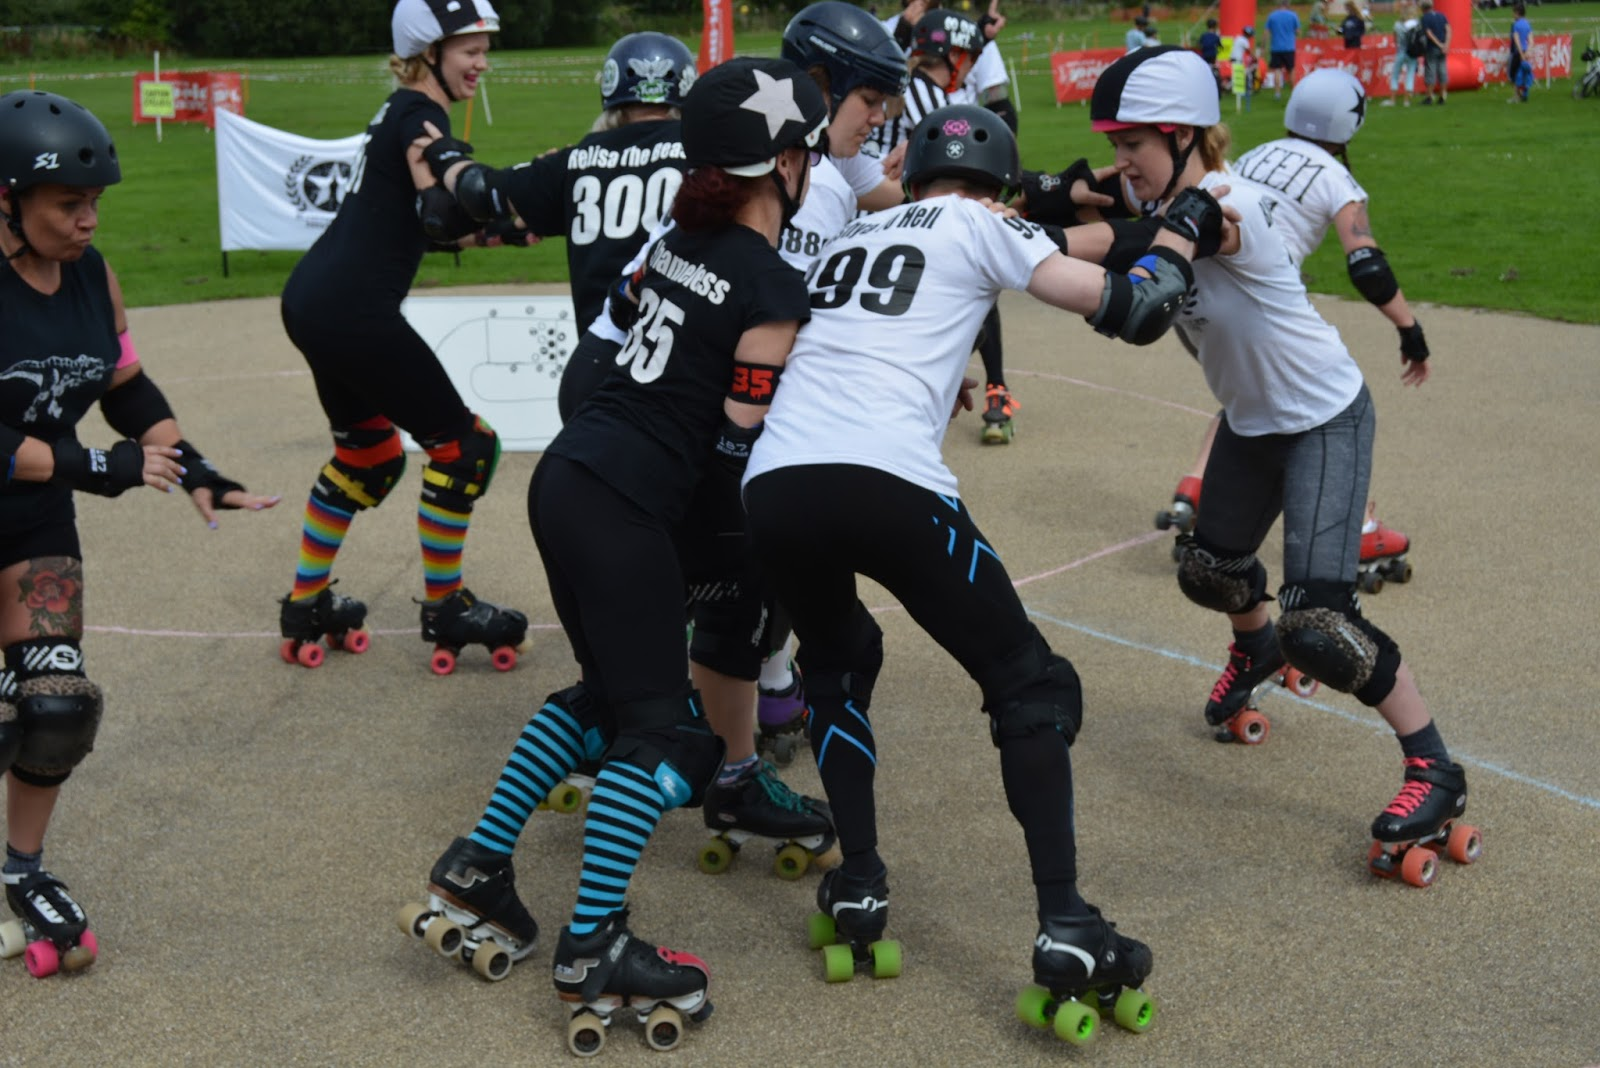 roller derby, roller skates, gear, sport, fitness, game, challenge, workout